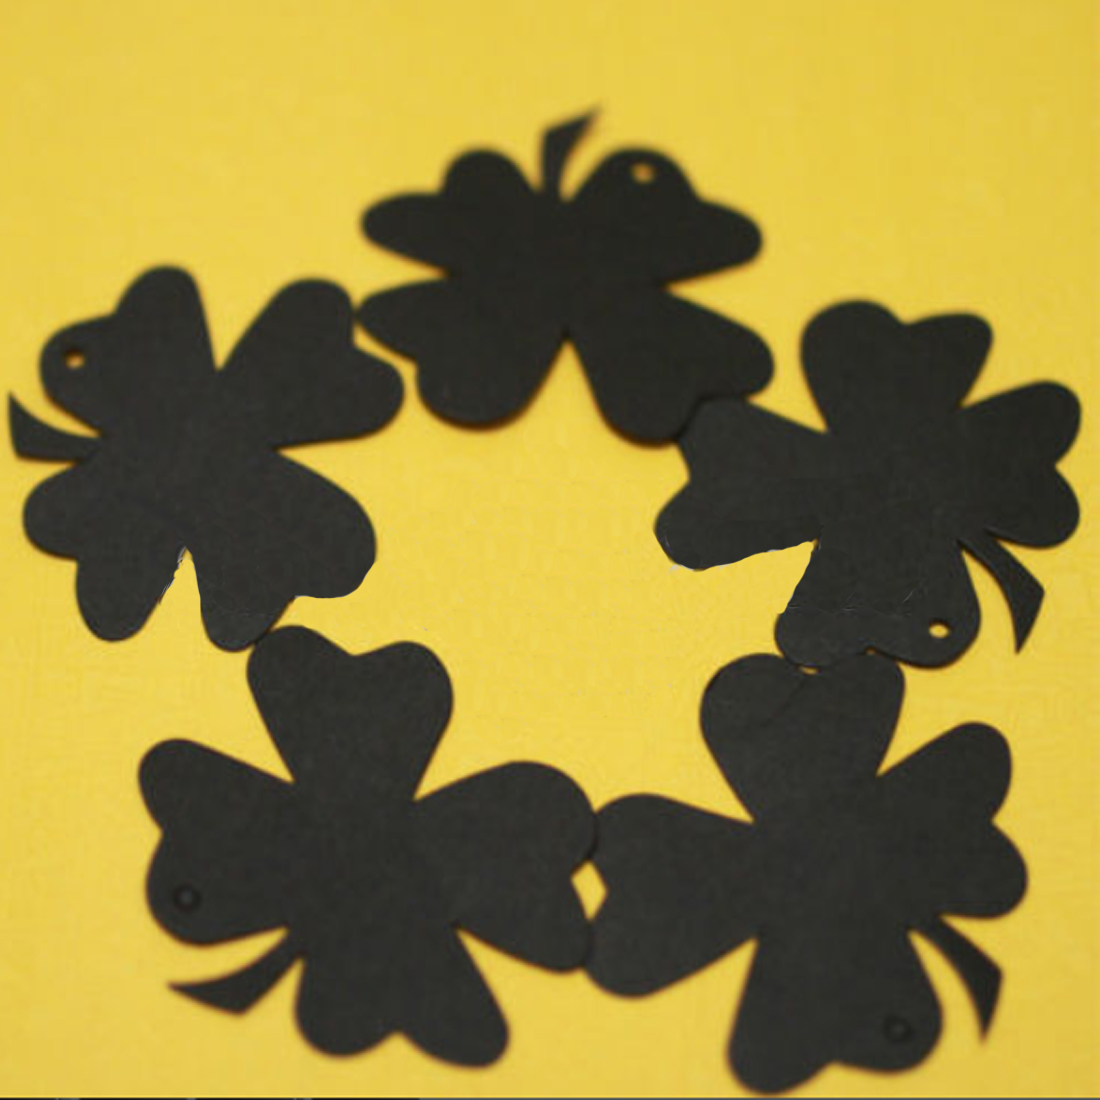 New Arrival 10Pcs Clover Blank Kraft Paper Gift Tags Wedding Doorplate Scallop Favour Luggage